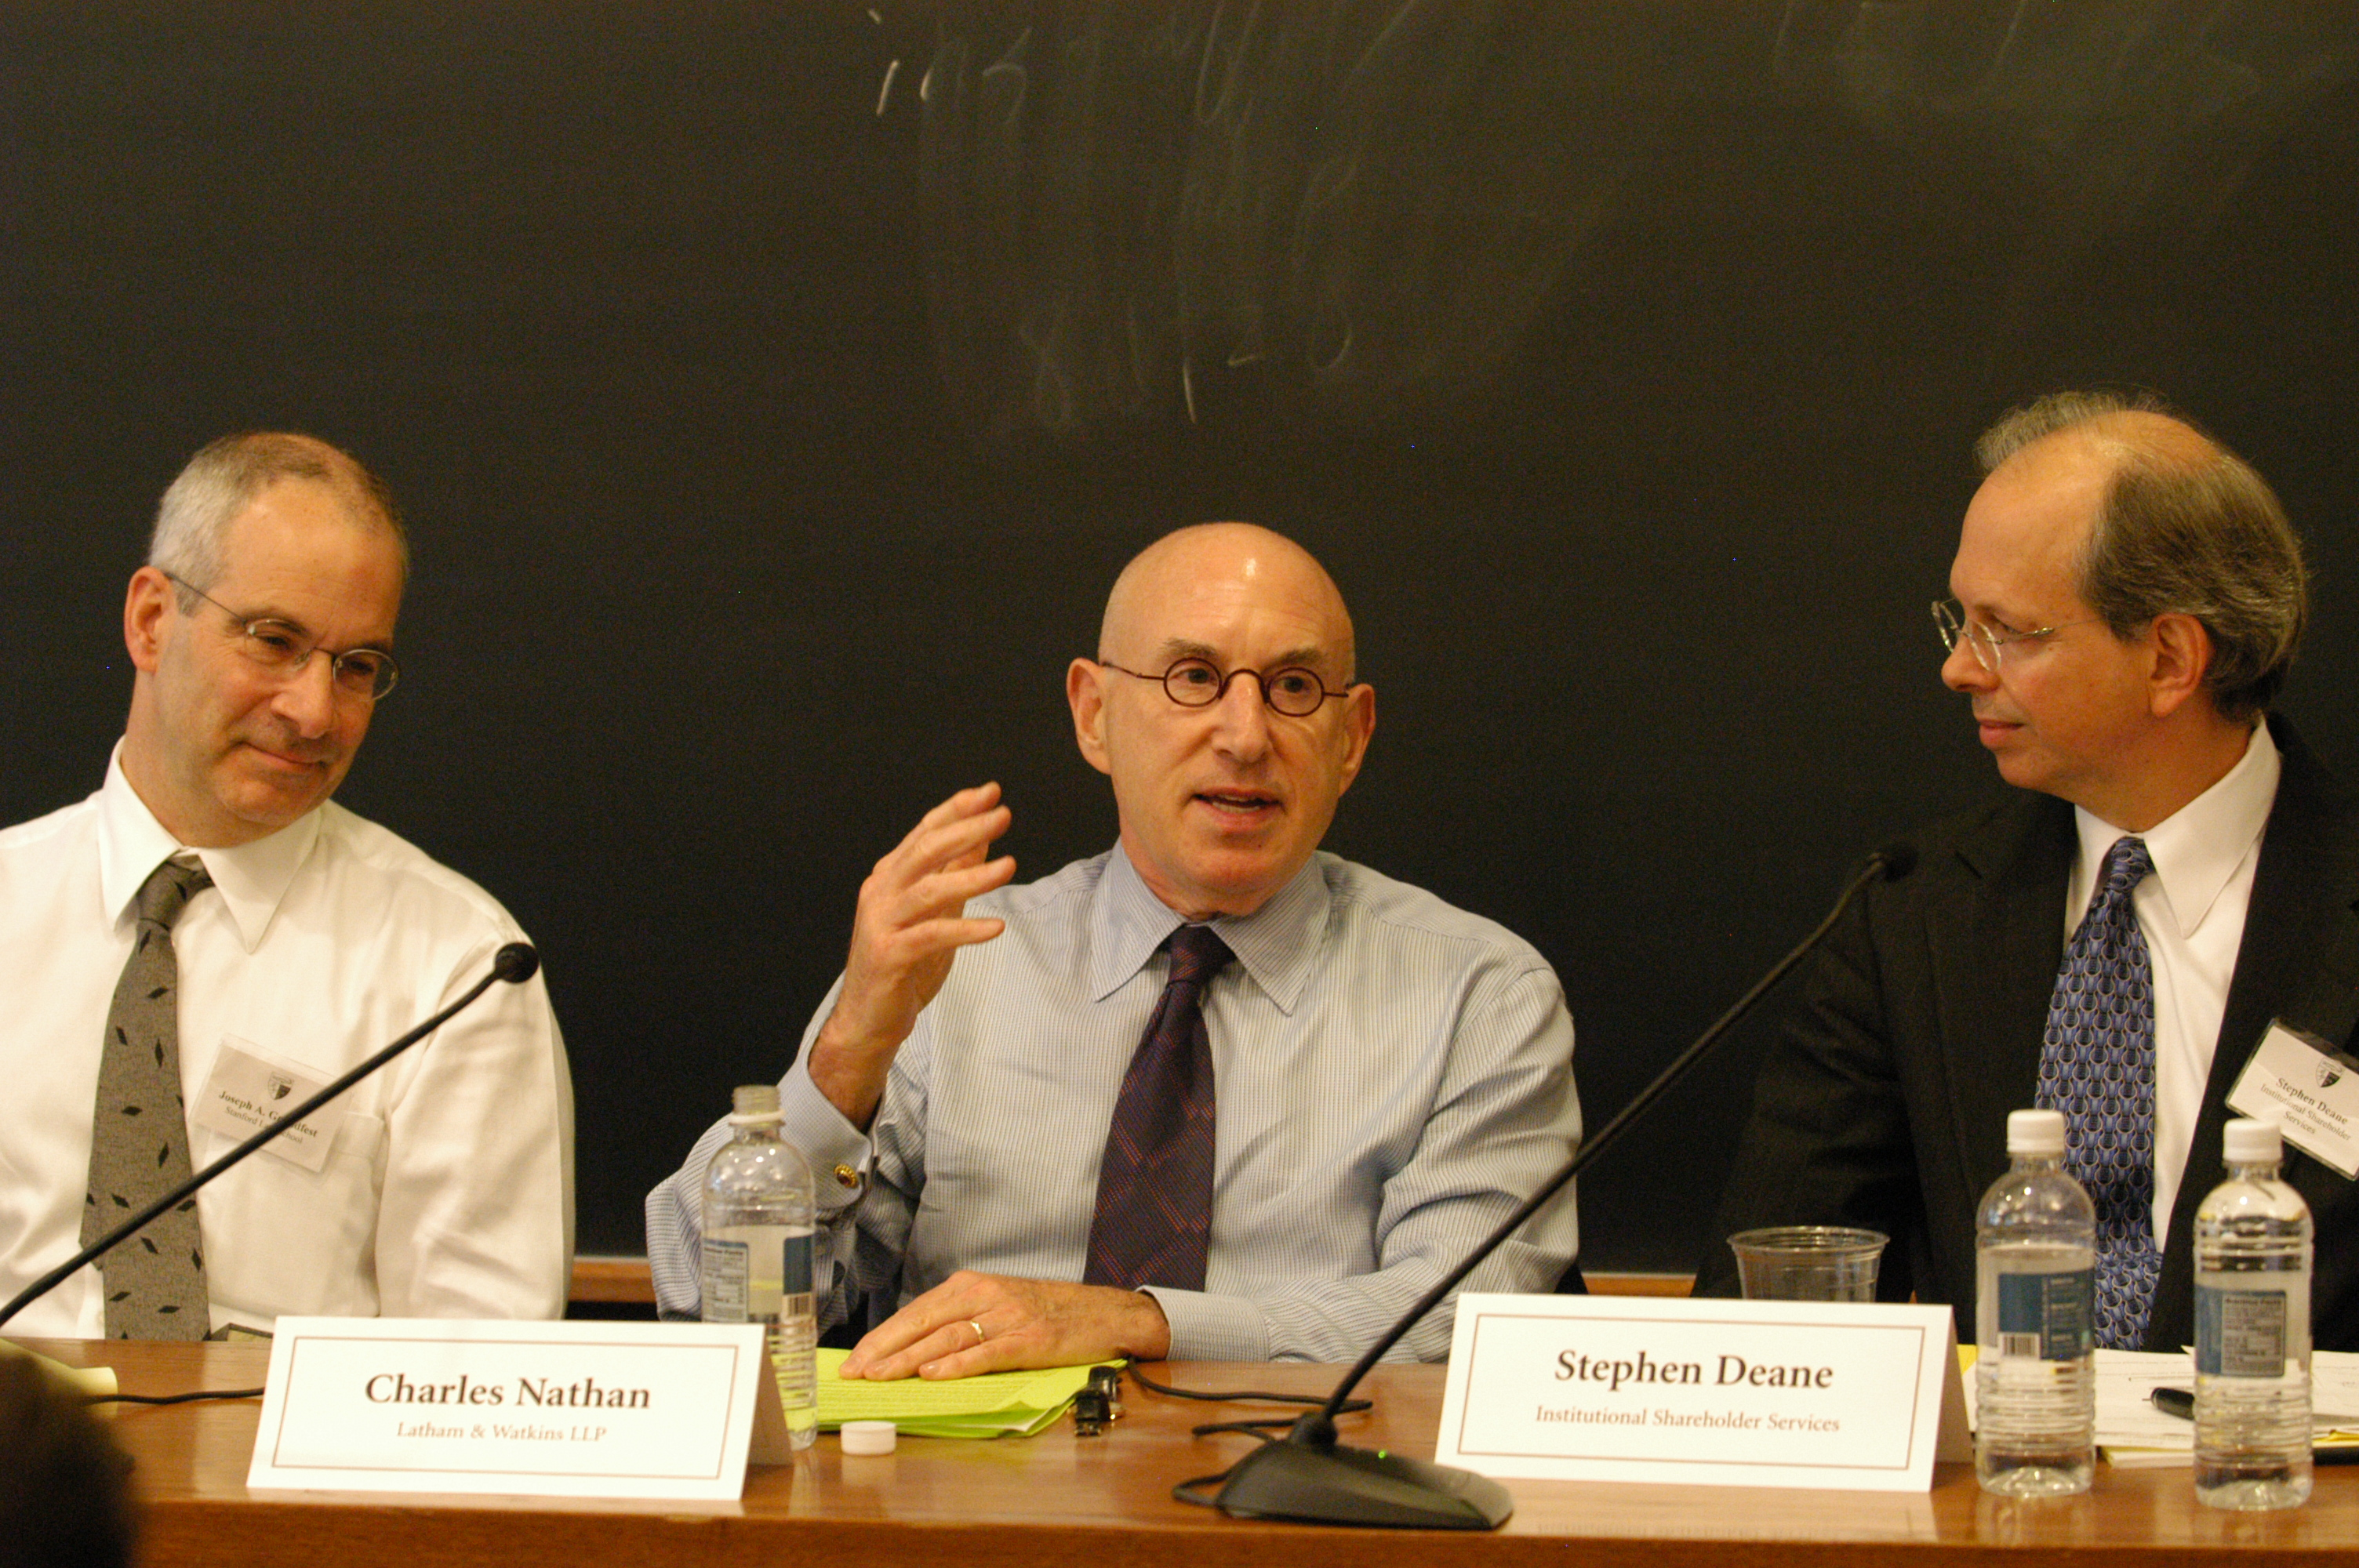 Stanford Law Prof. Joseph Grundfest, Charles Nathan '65, and Stephen Deane